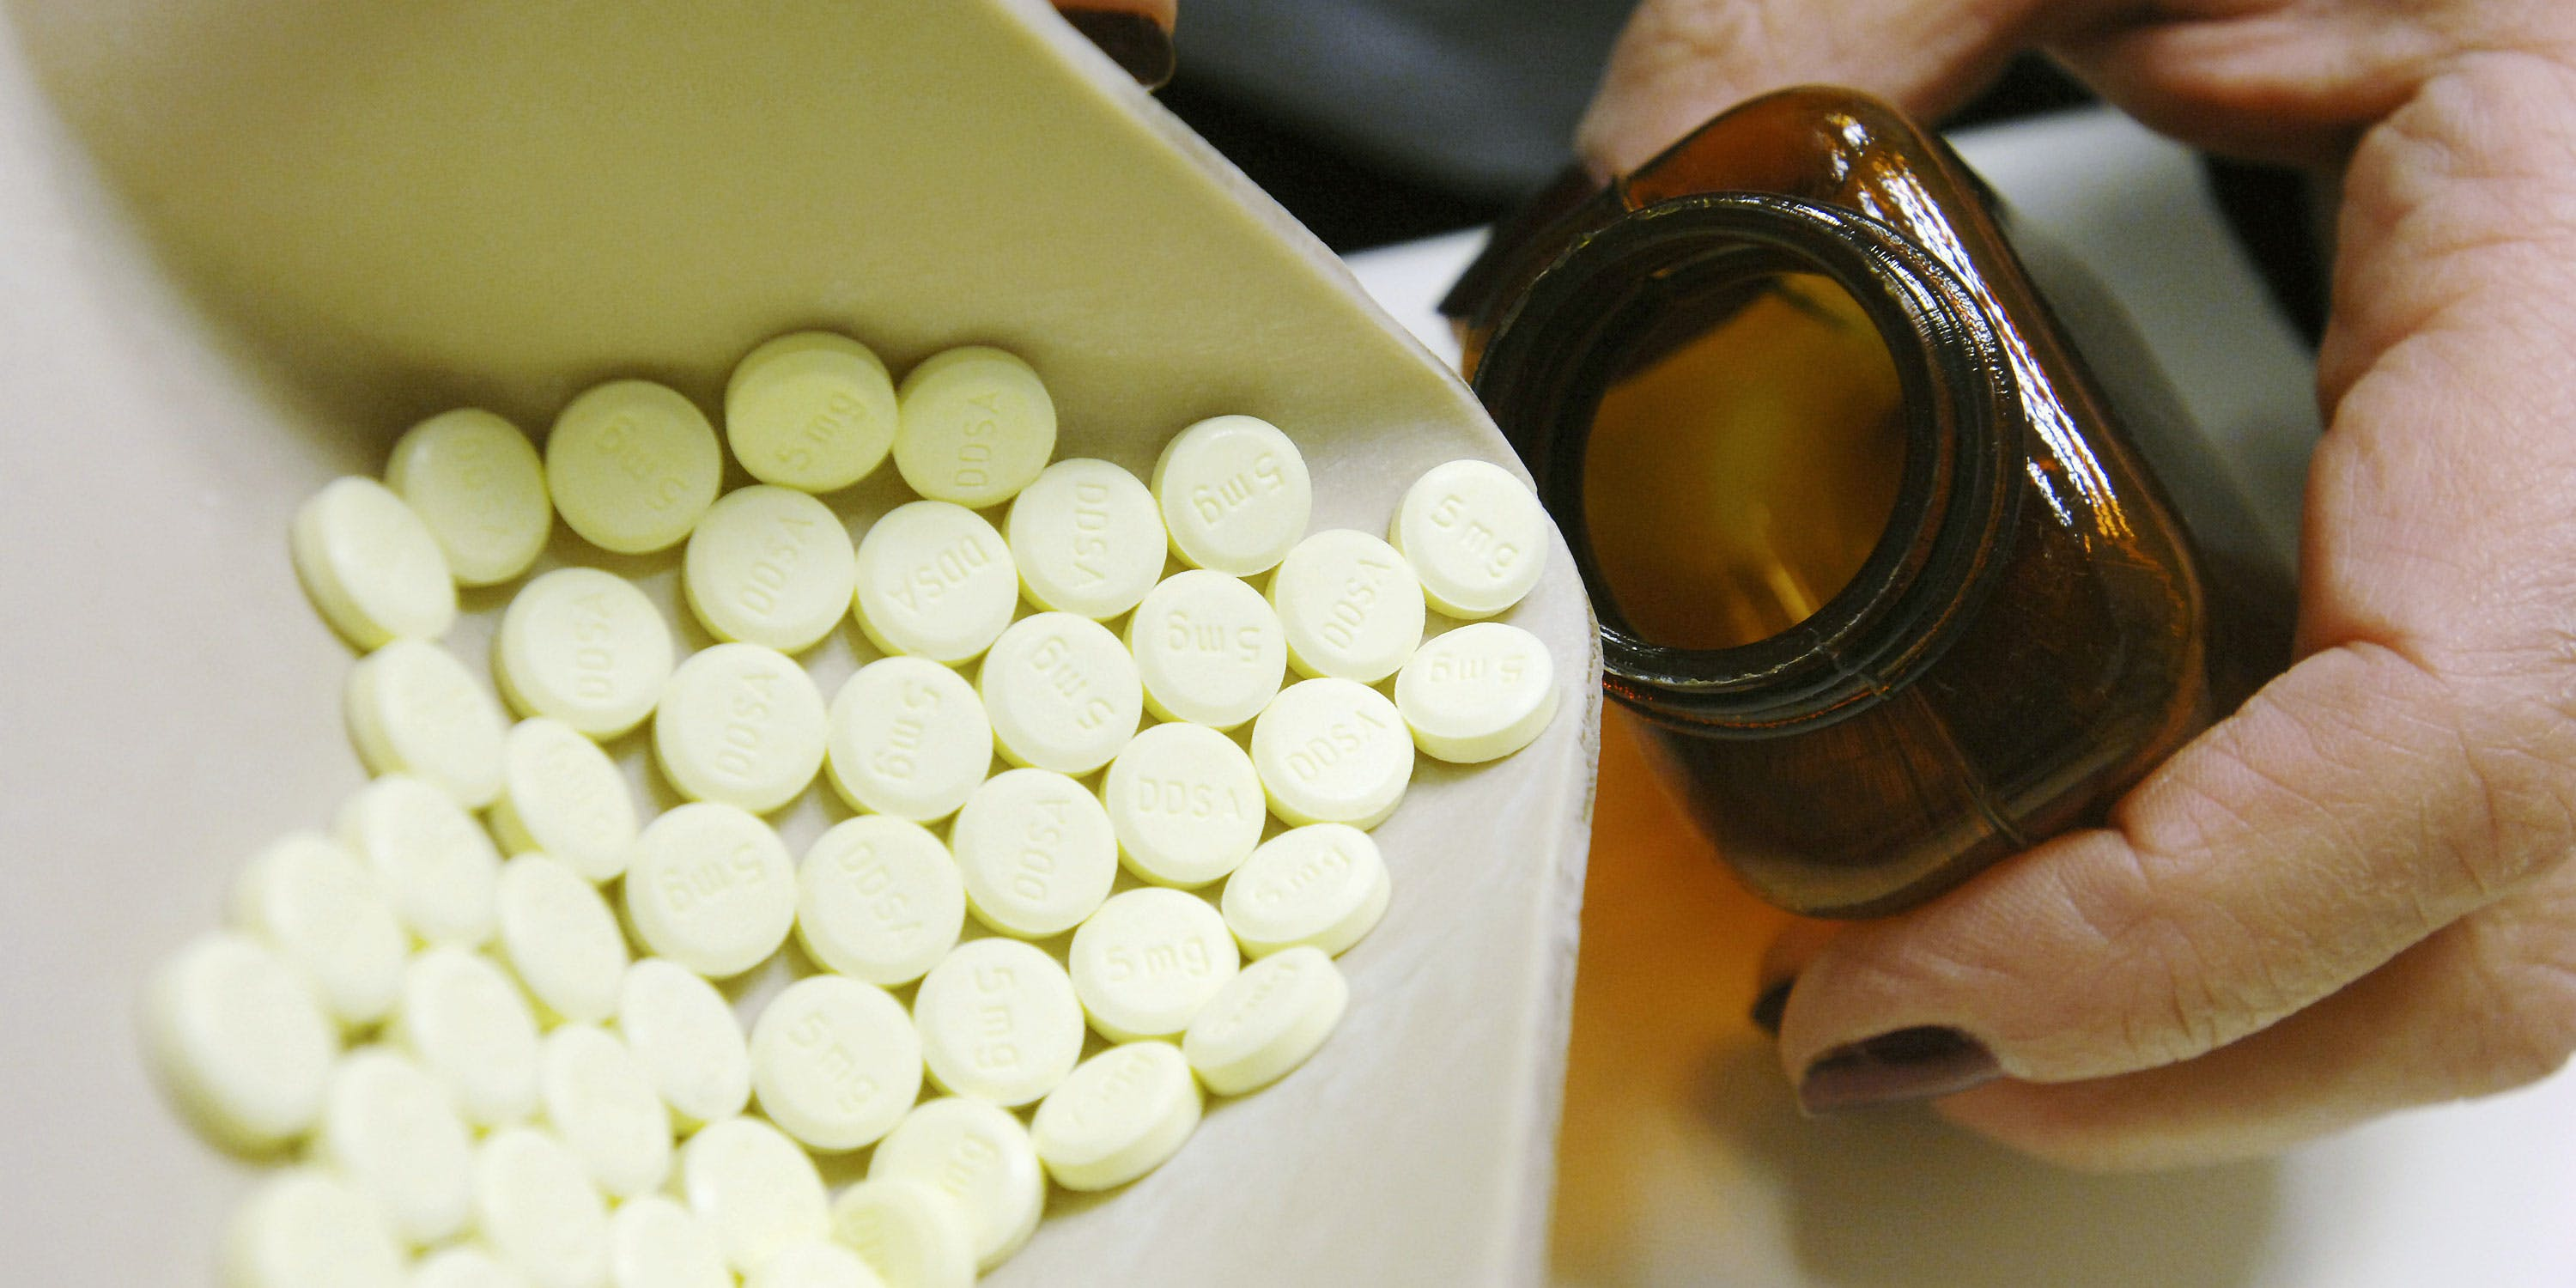 Close-up of a pharmacist dispensing tablets from a pill bottle. Research is beginning to emerge about the use and benefits of cannabis as a sleep aid.